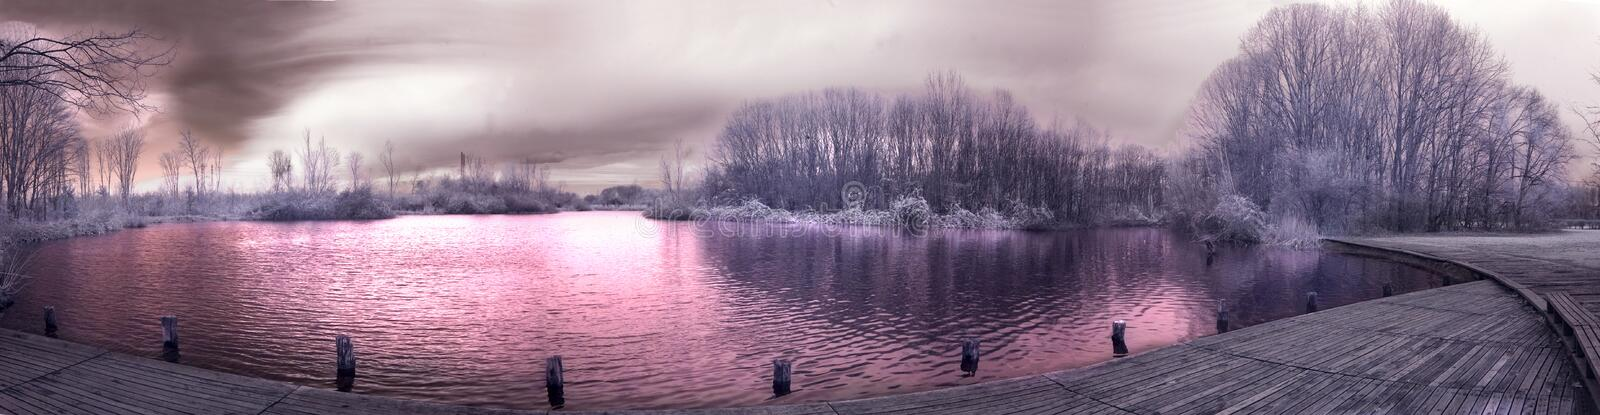 infrared panorama obrazy royalty free